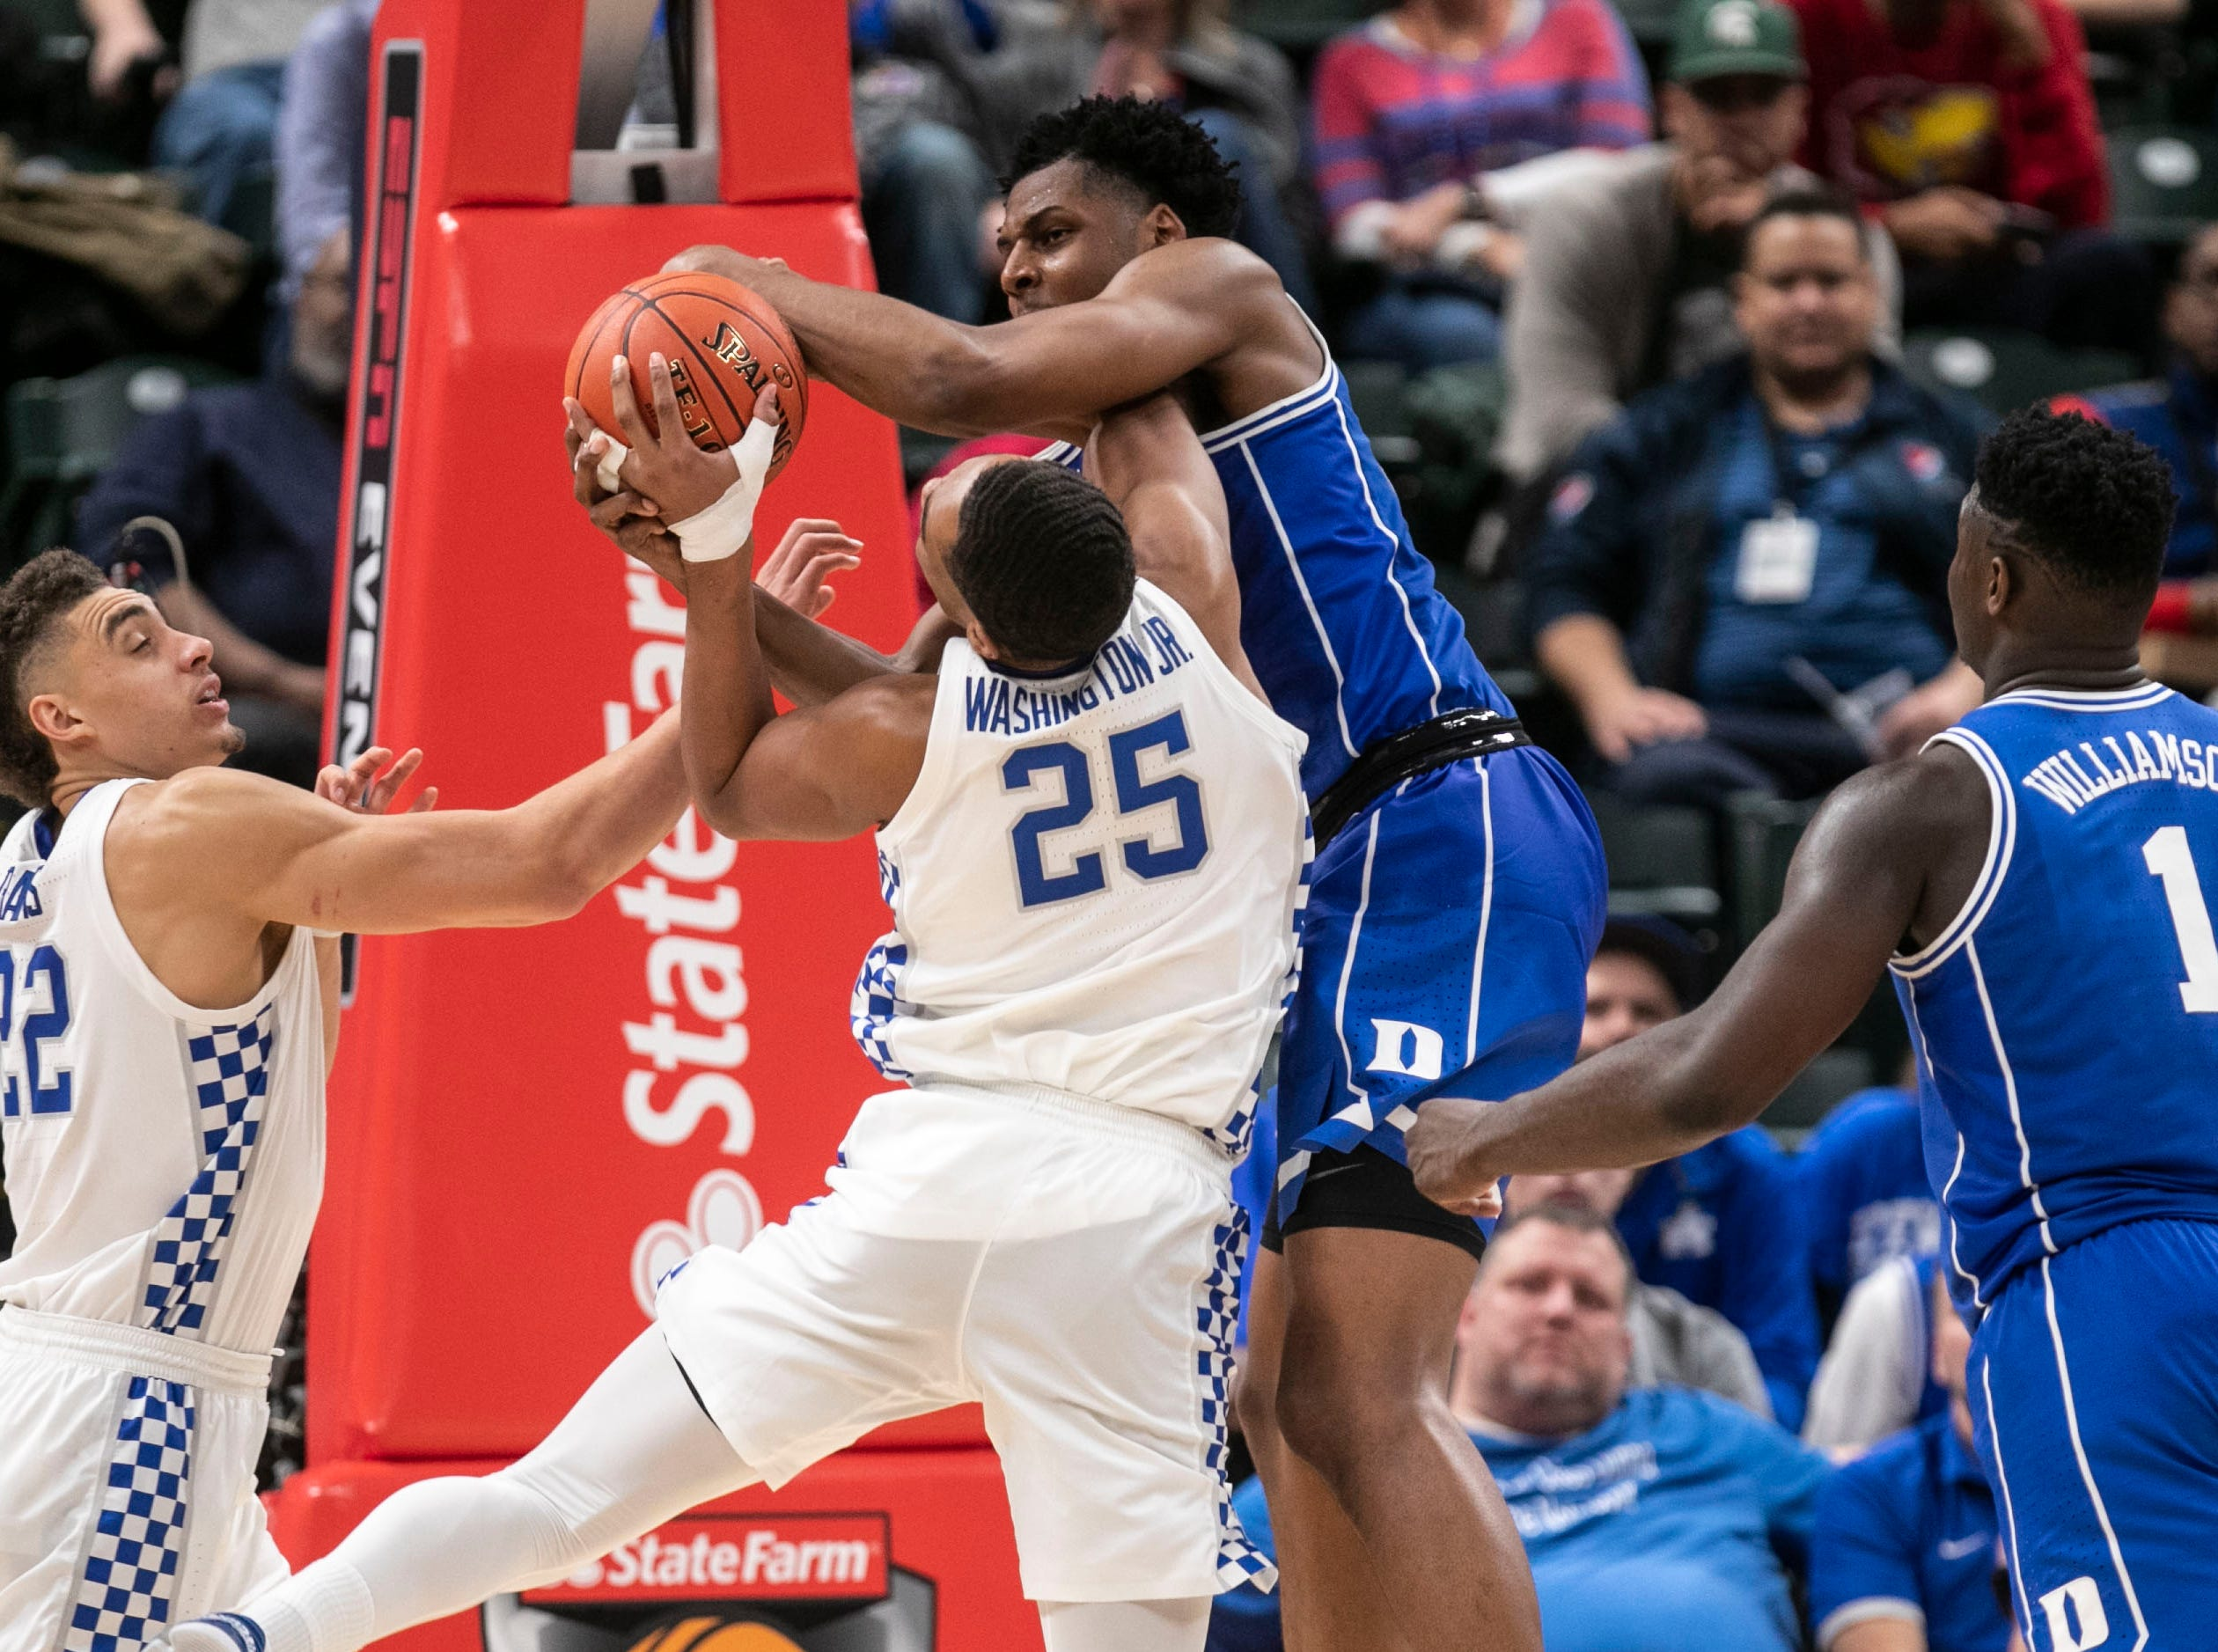 Duke's Marques Bolden pressured Kentucky's PJ Washington that resulted in a jump bal as the Blue Devils cruised past Kentucky 118-84 in the Champions Classic Nov. 6, 2018